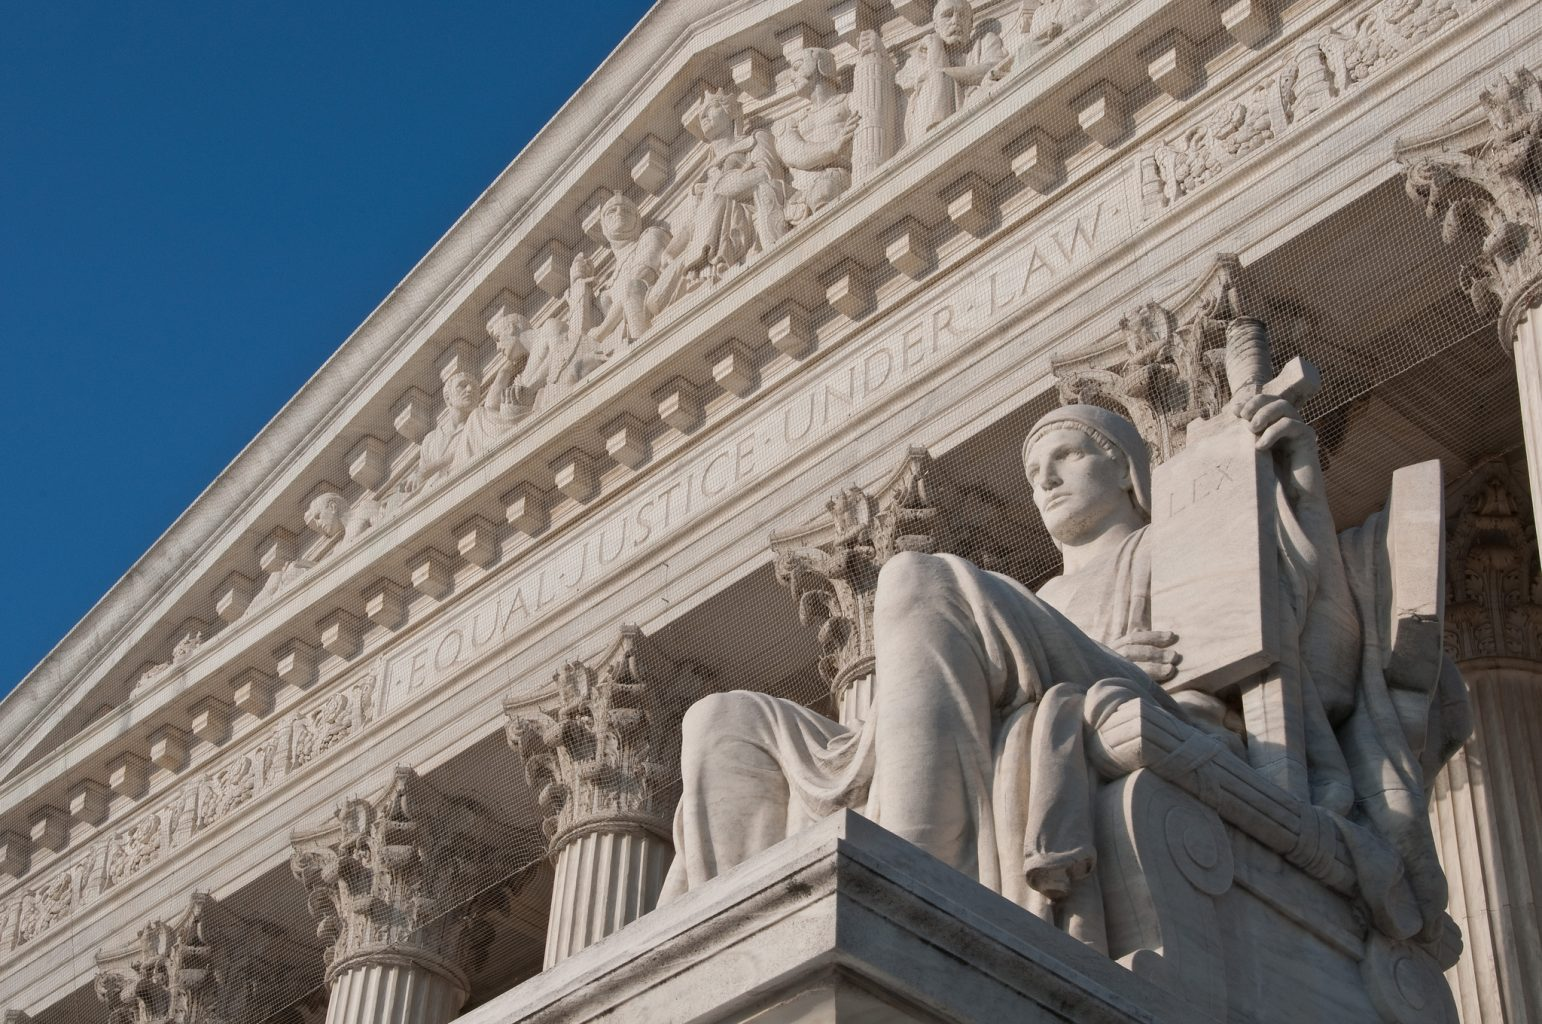 Image: Close up of the US Supreme Court building